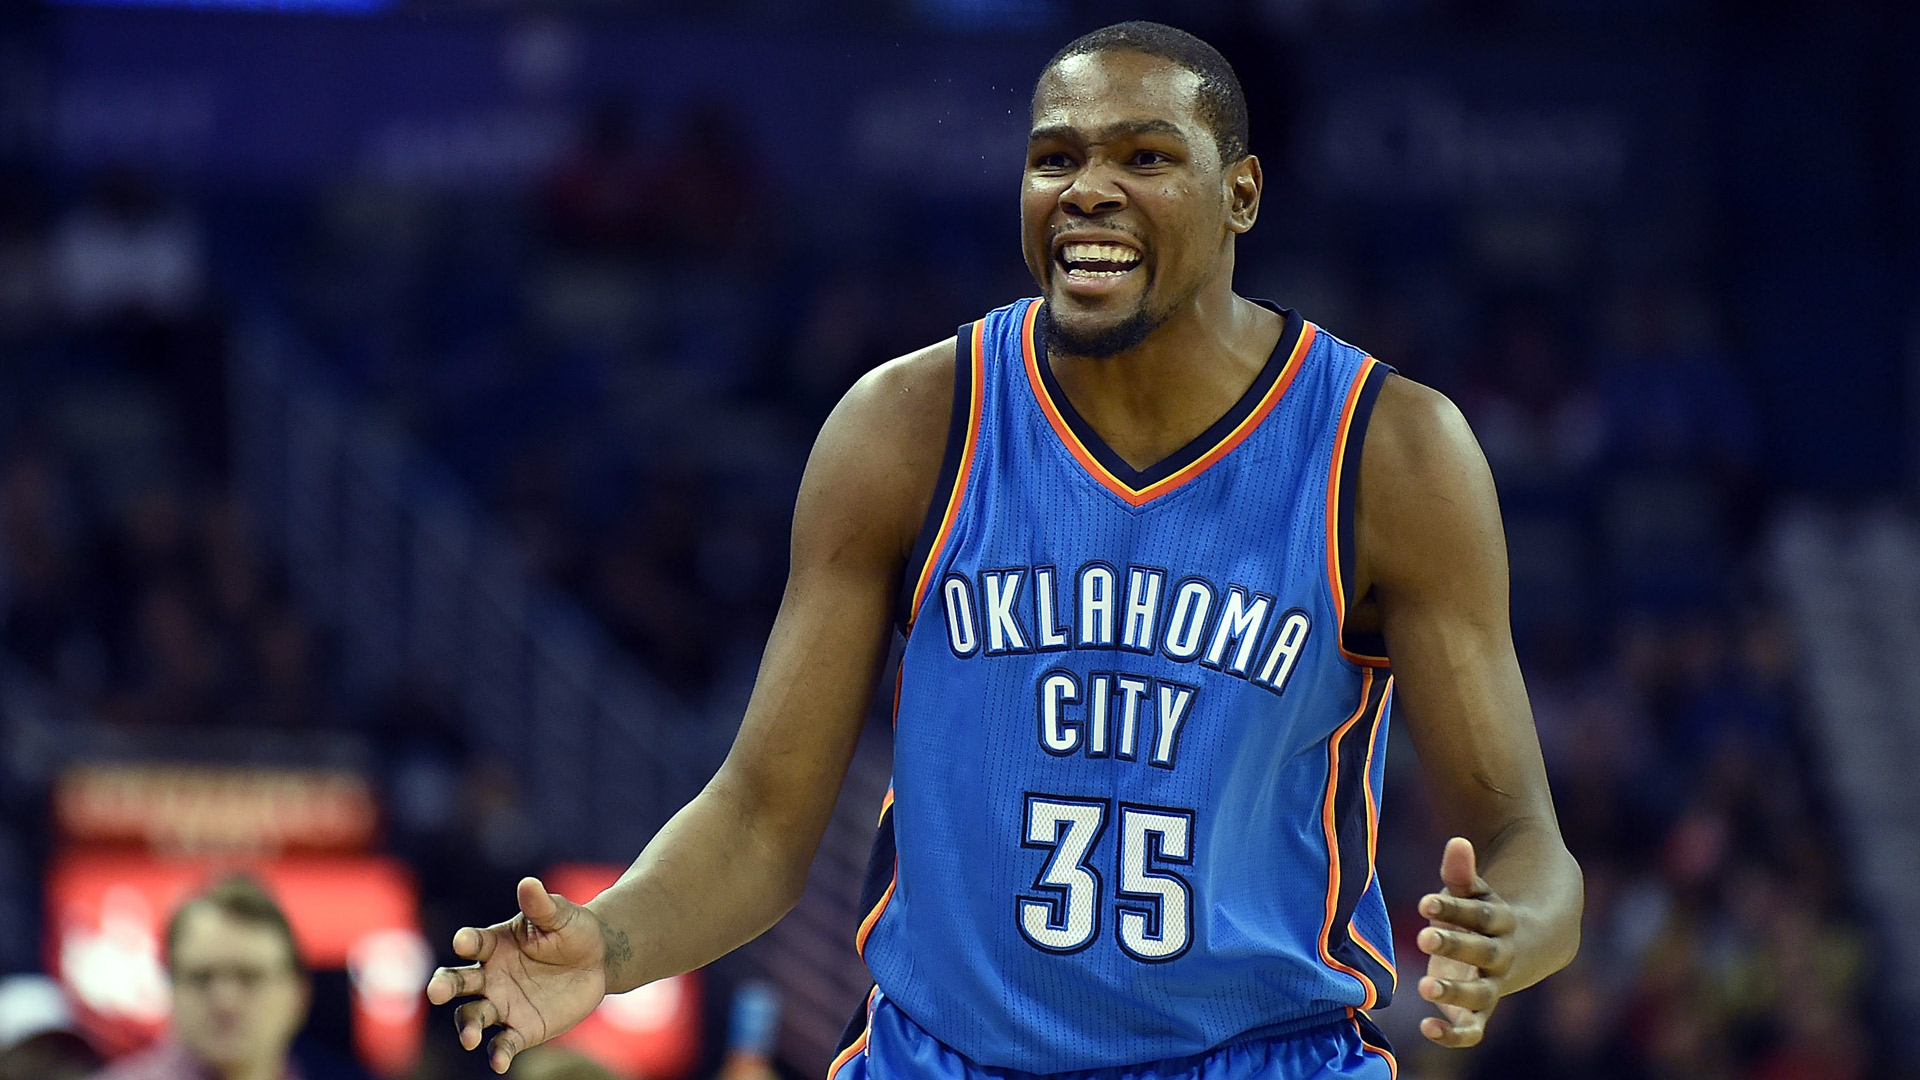 NBA betting lines and picks – Second half of season starts with Western Conference doubleheader